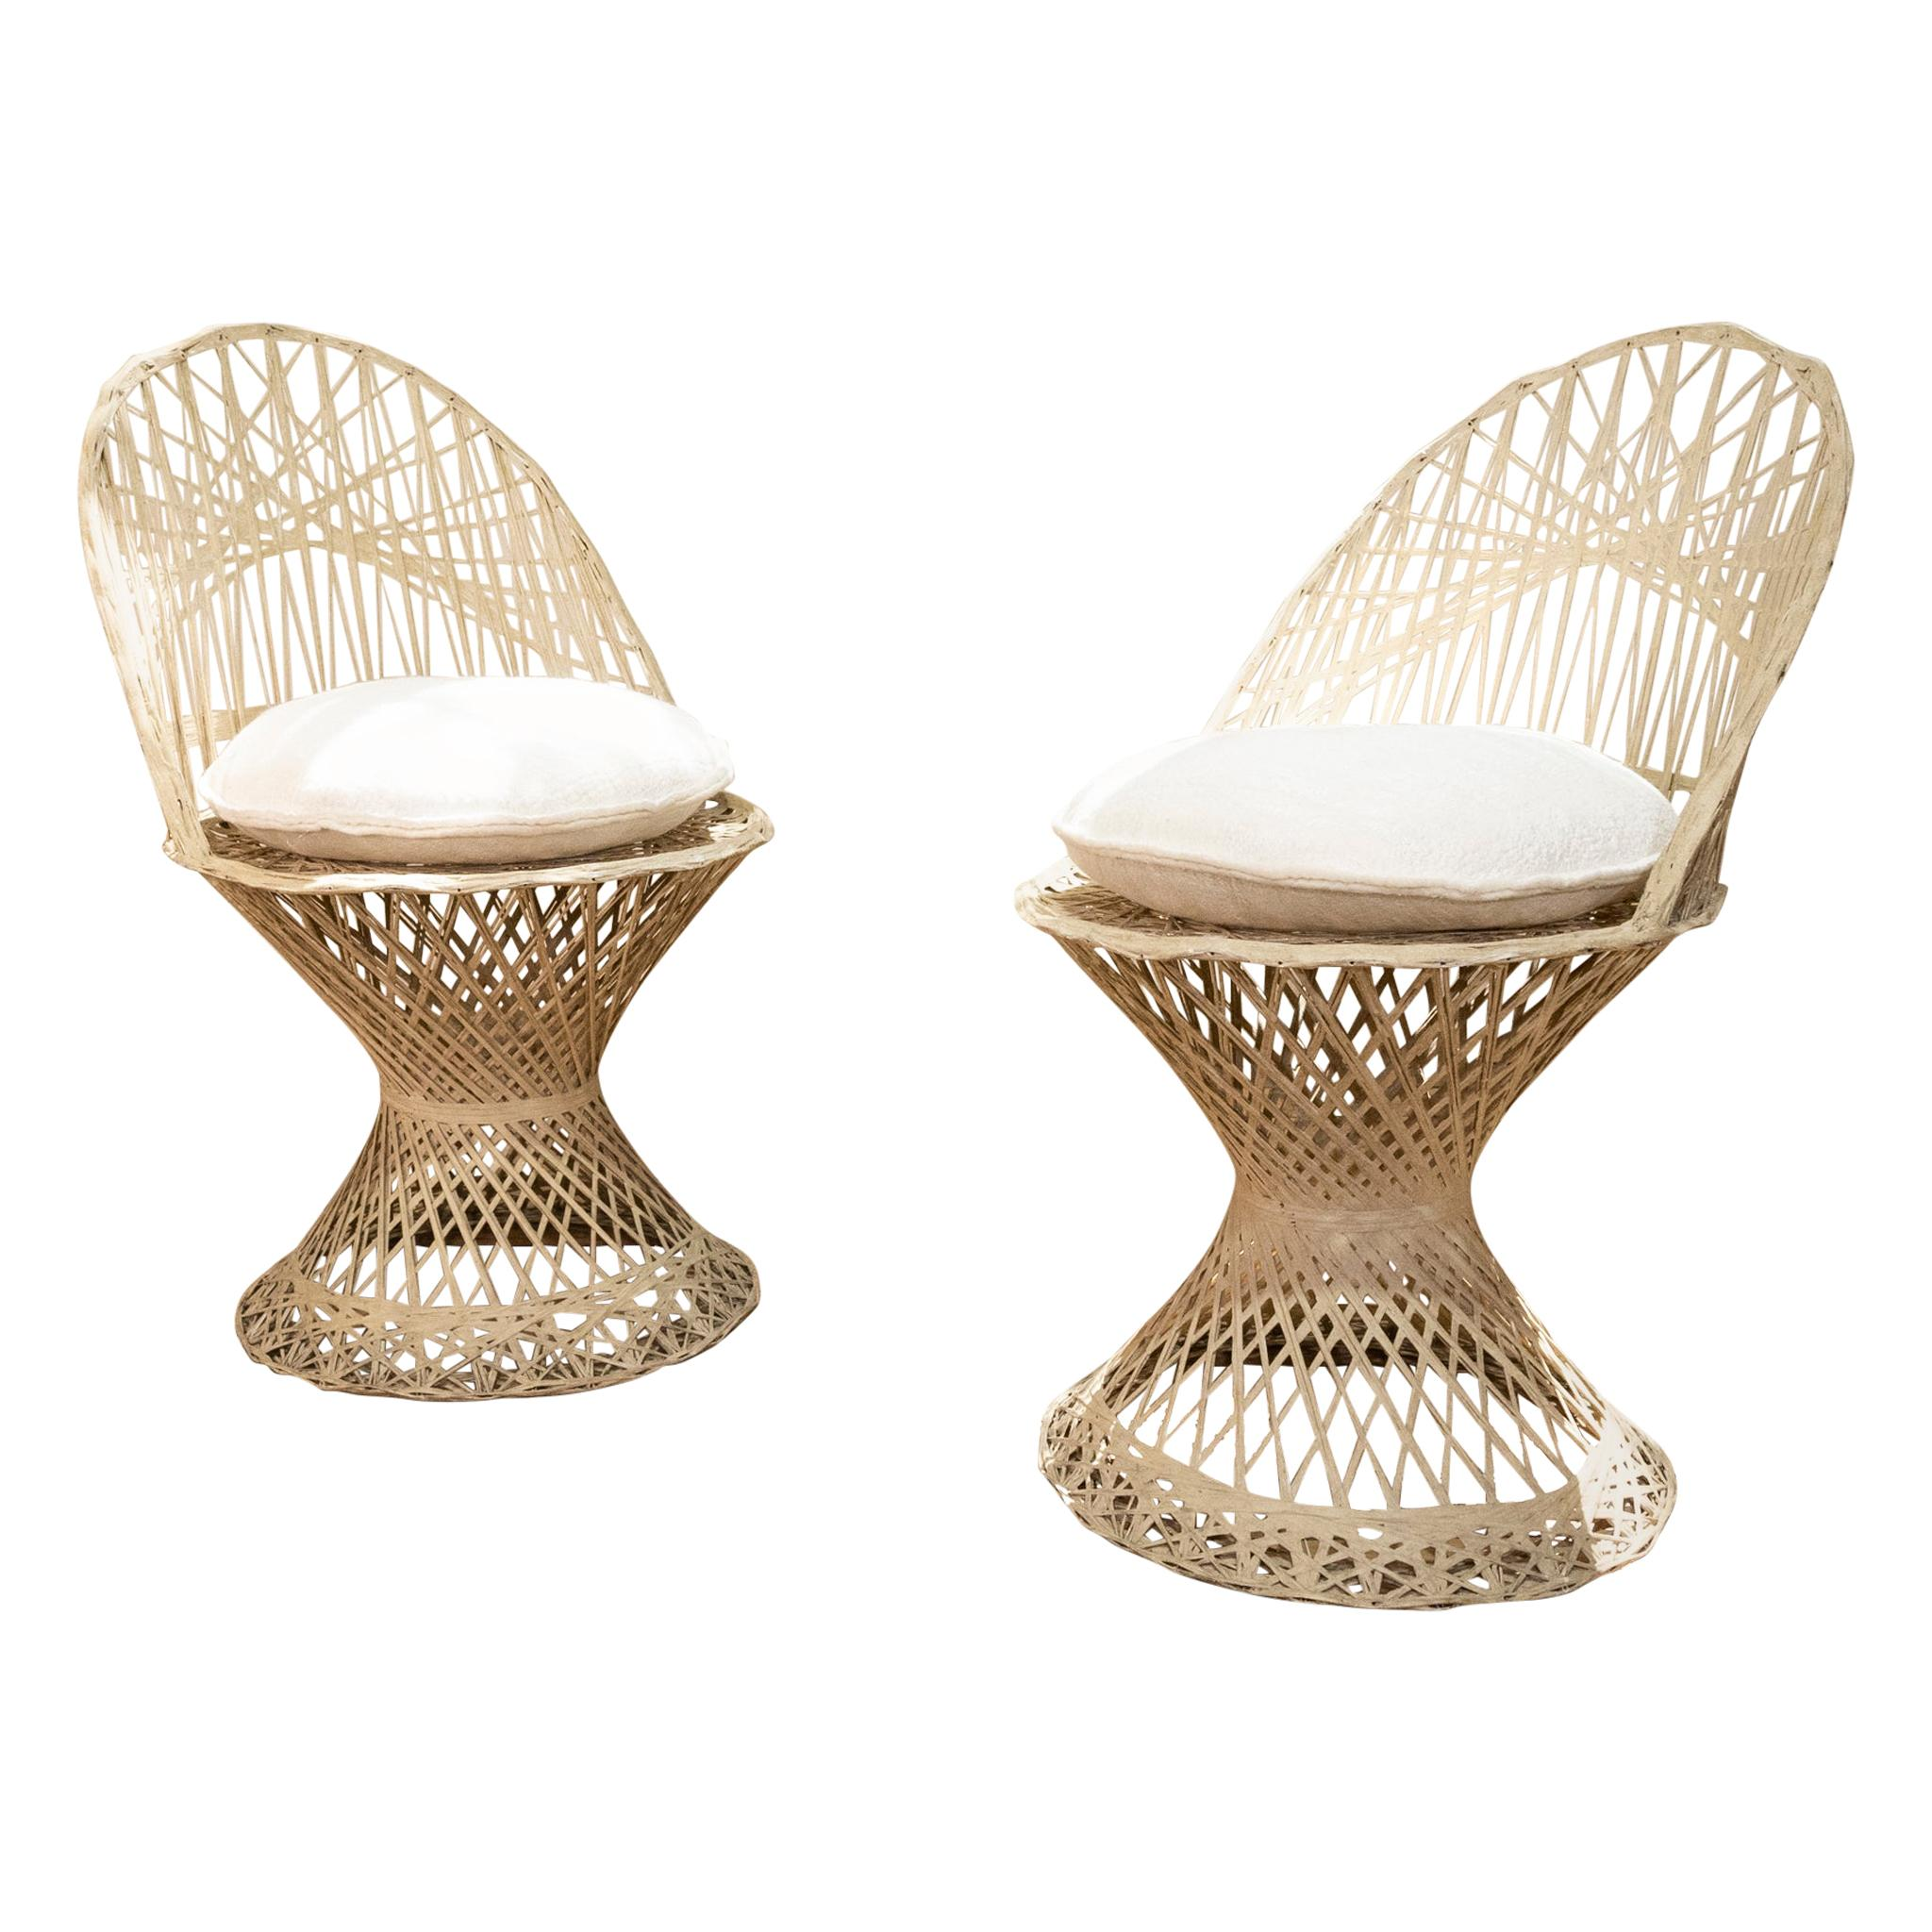 Pair of Mid-20th Century Russell Woodard Wicker Effect Side Chairs, Patio